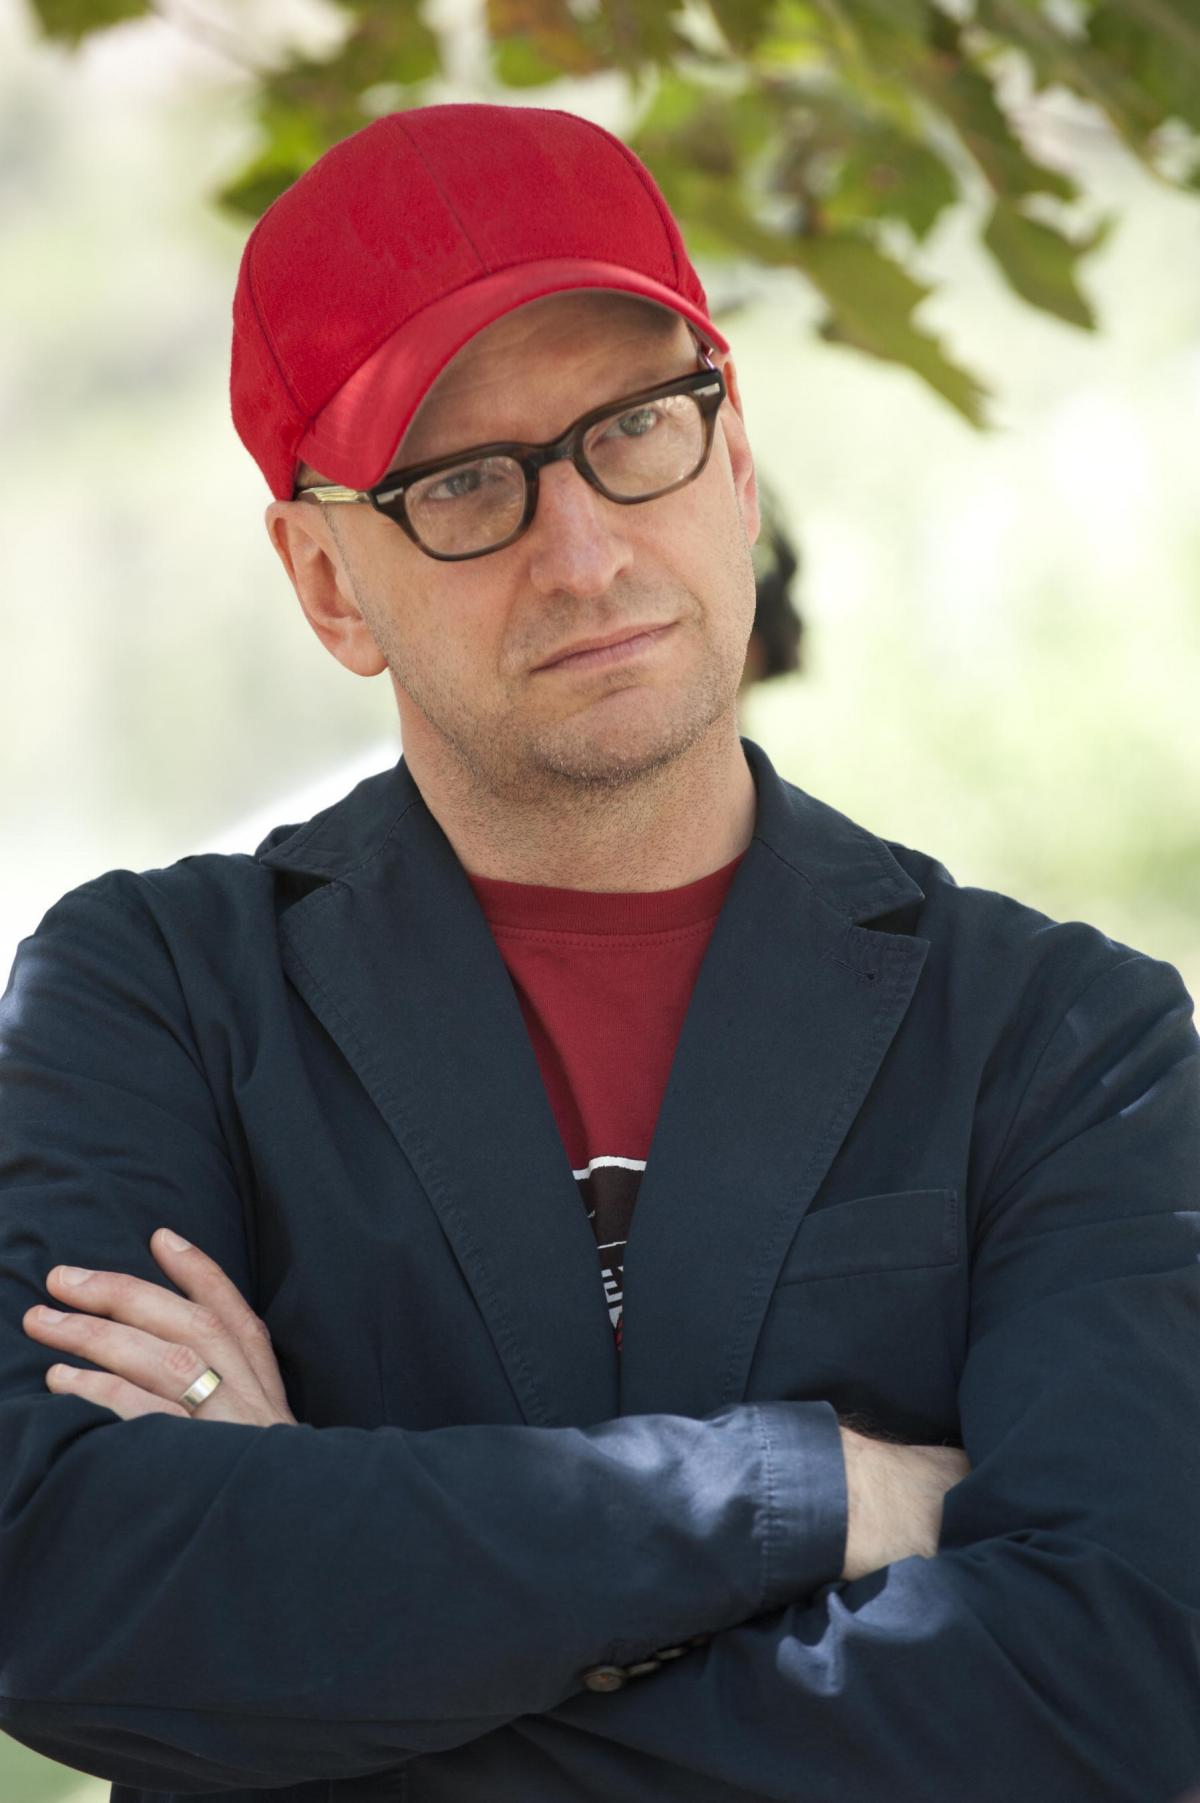 Soderbergh made his name as a director in 1989, with the critically acclaimed Sex, Lies, and Videotape. He's since turned in crowd-pleasing hits like Magic Mike, Erin Brockovich and Ocean's Eleven and its sequels, as well as more adventurous films includi